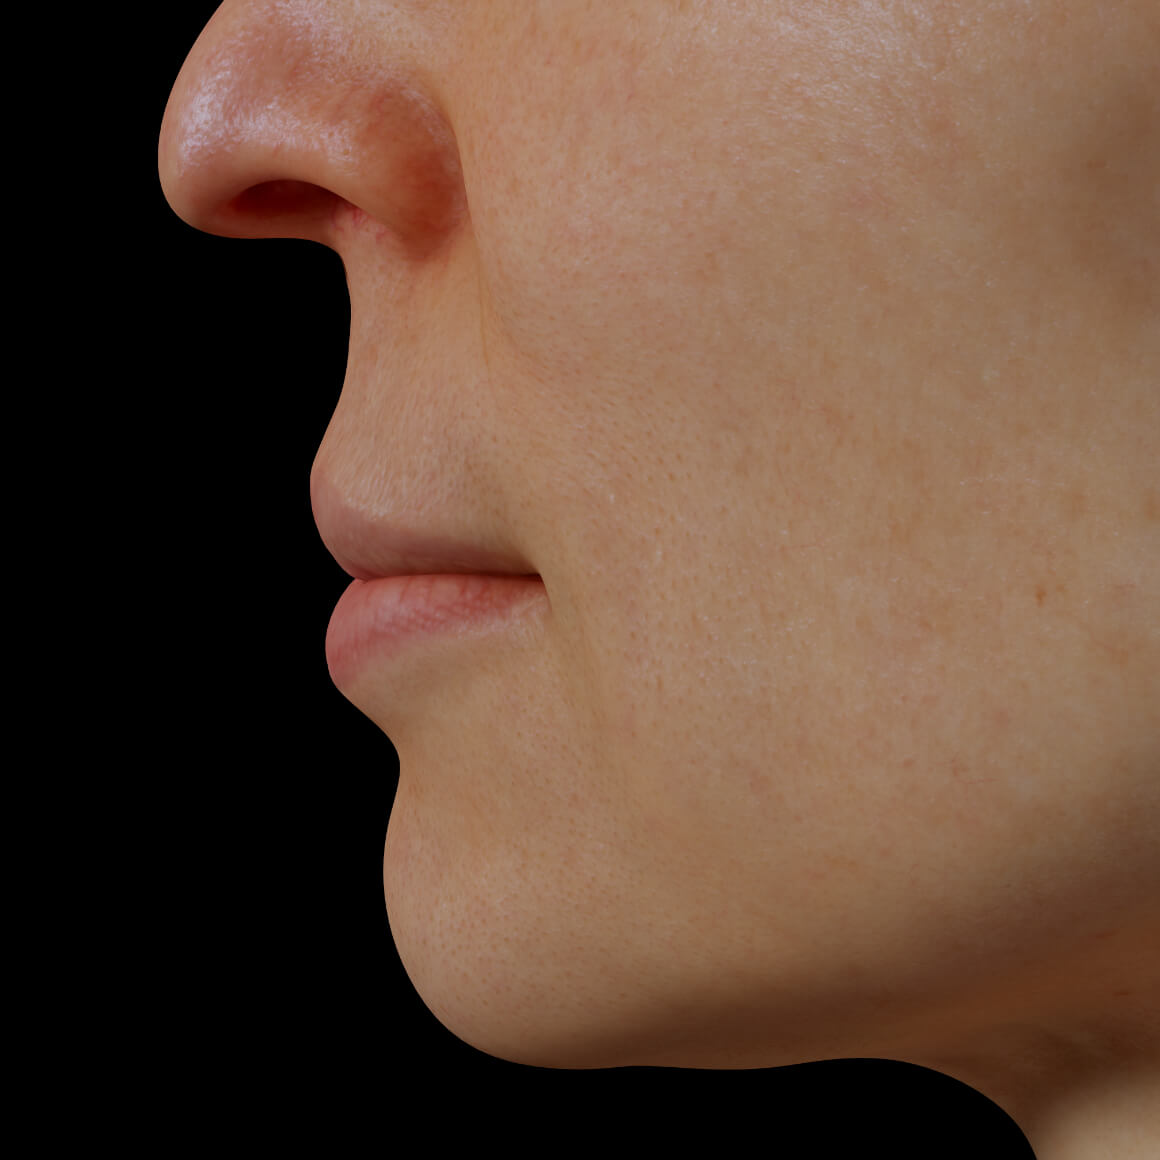 A Clinique Chloé female patient positioned sideways showing hydrated lips after a mesotherapy treatment